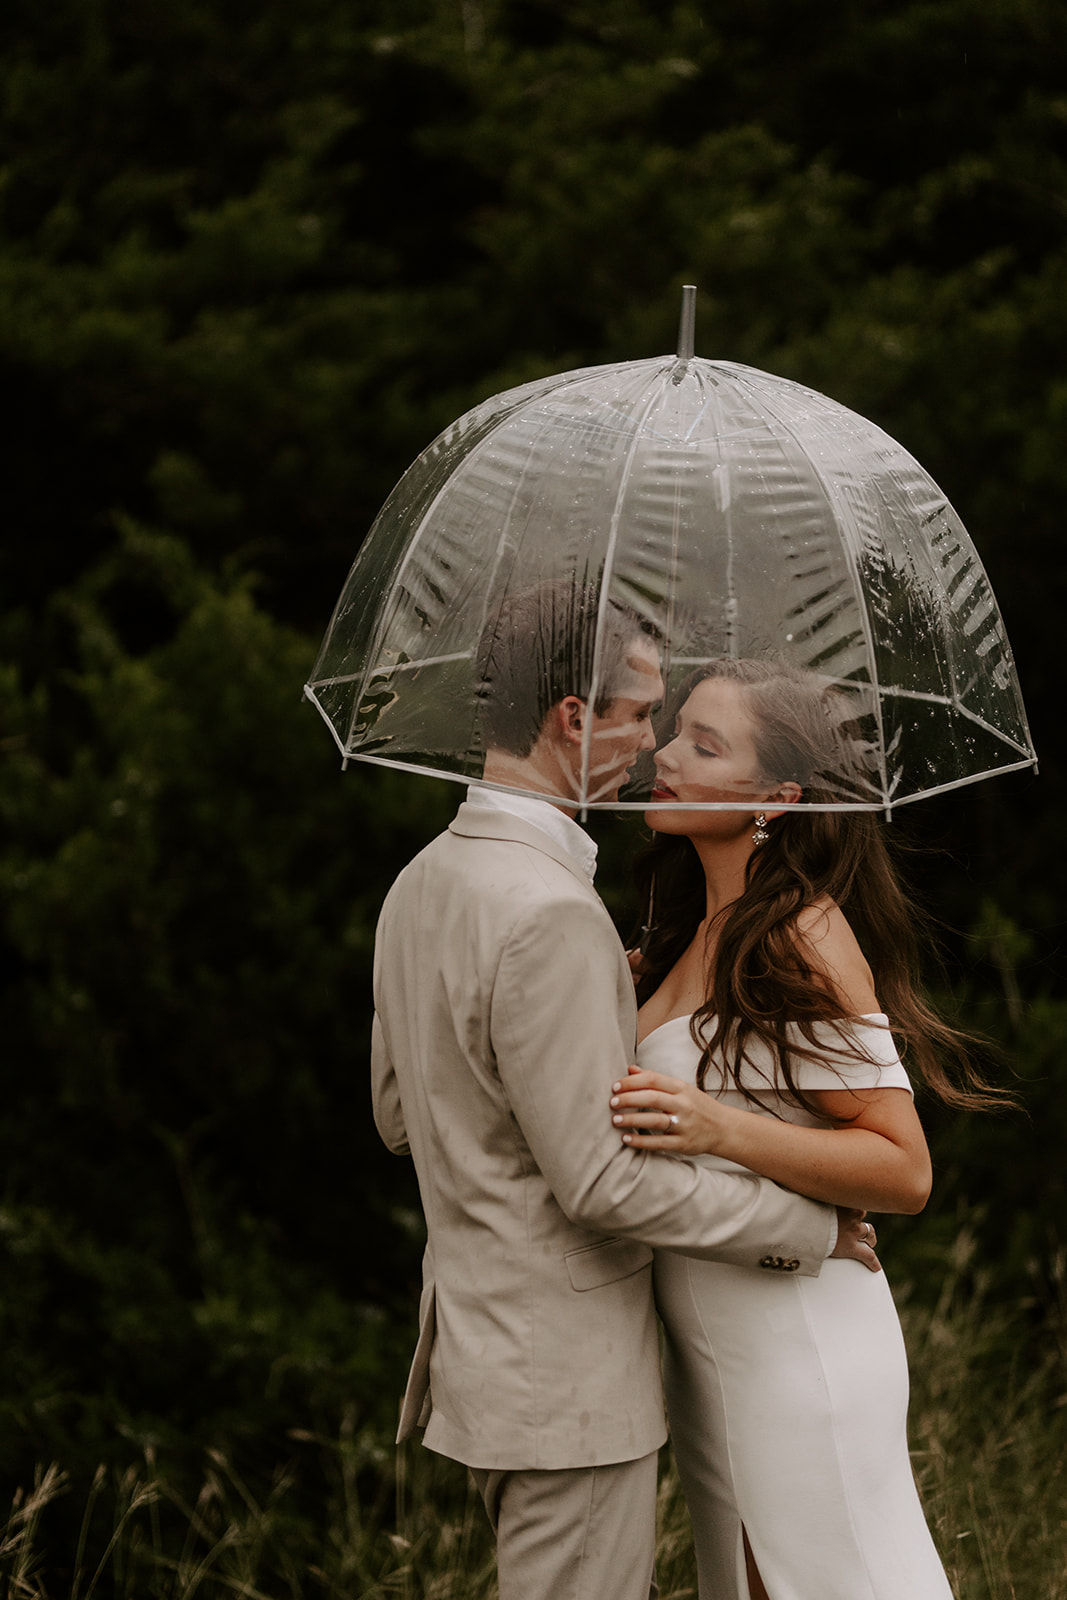 Winter-Fall Elopement- Meme Urbane Photography umbrella-6.jpg